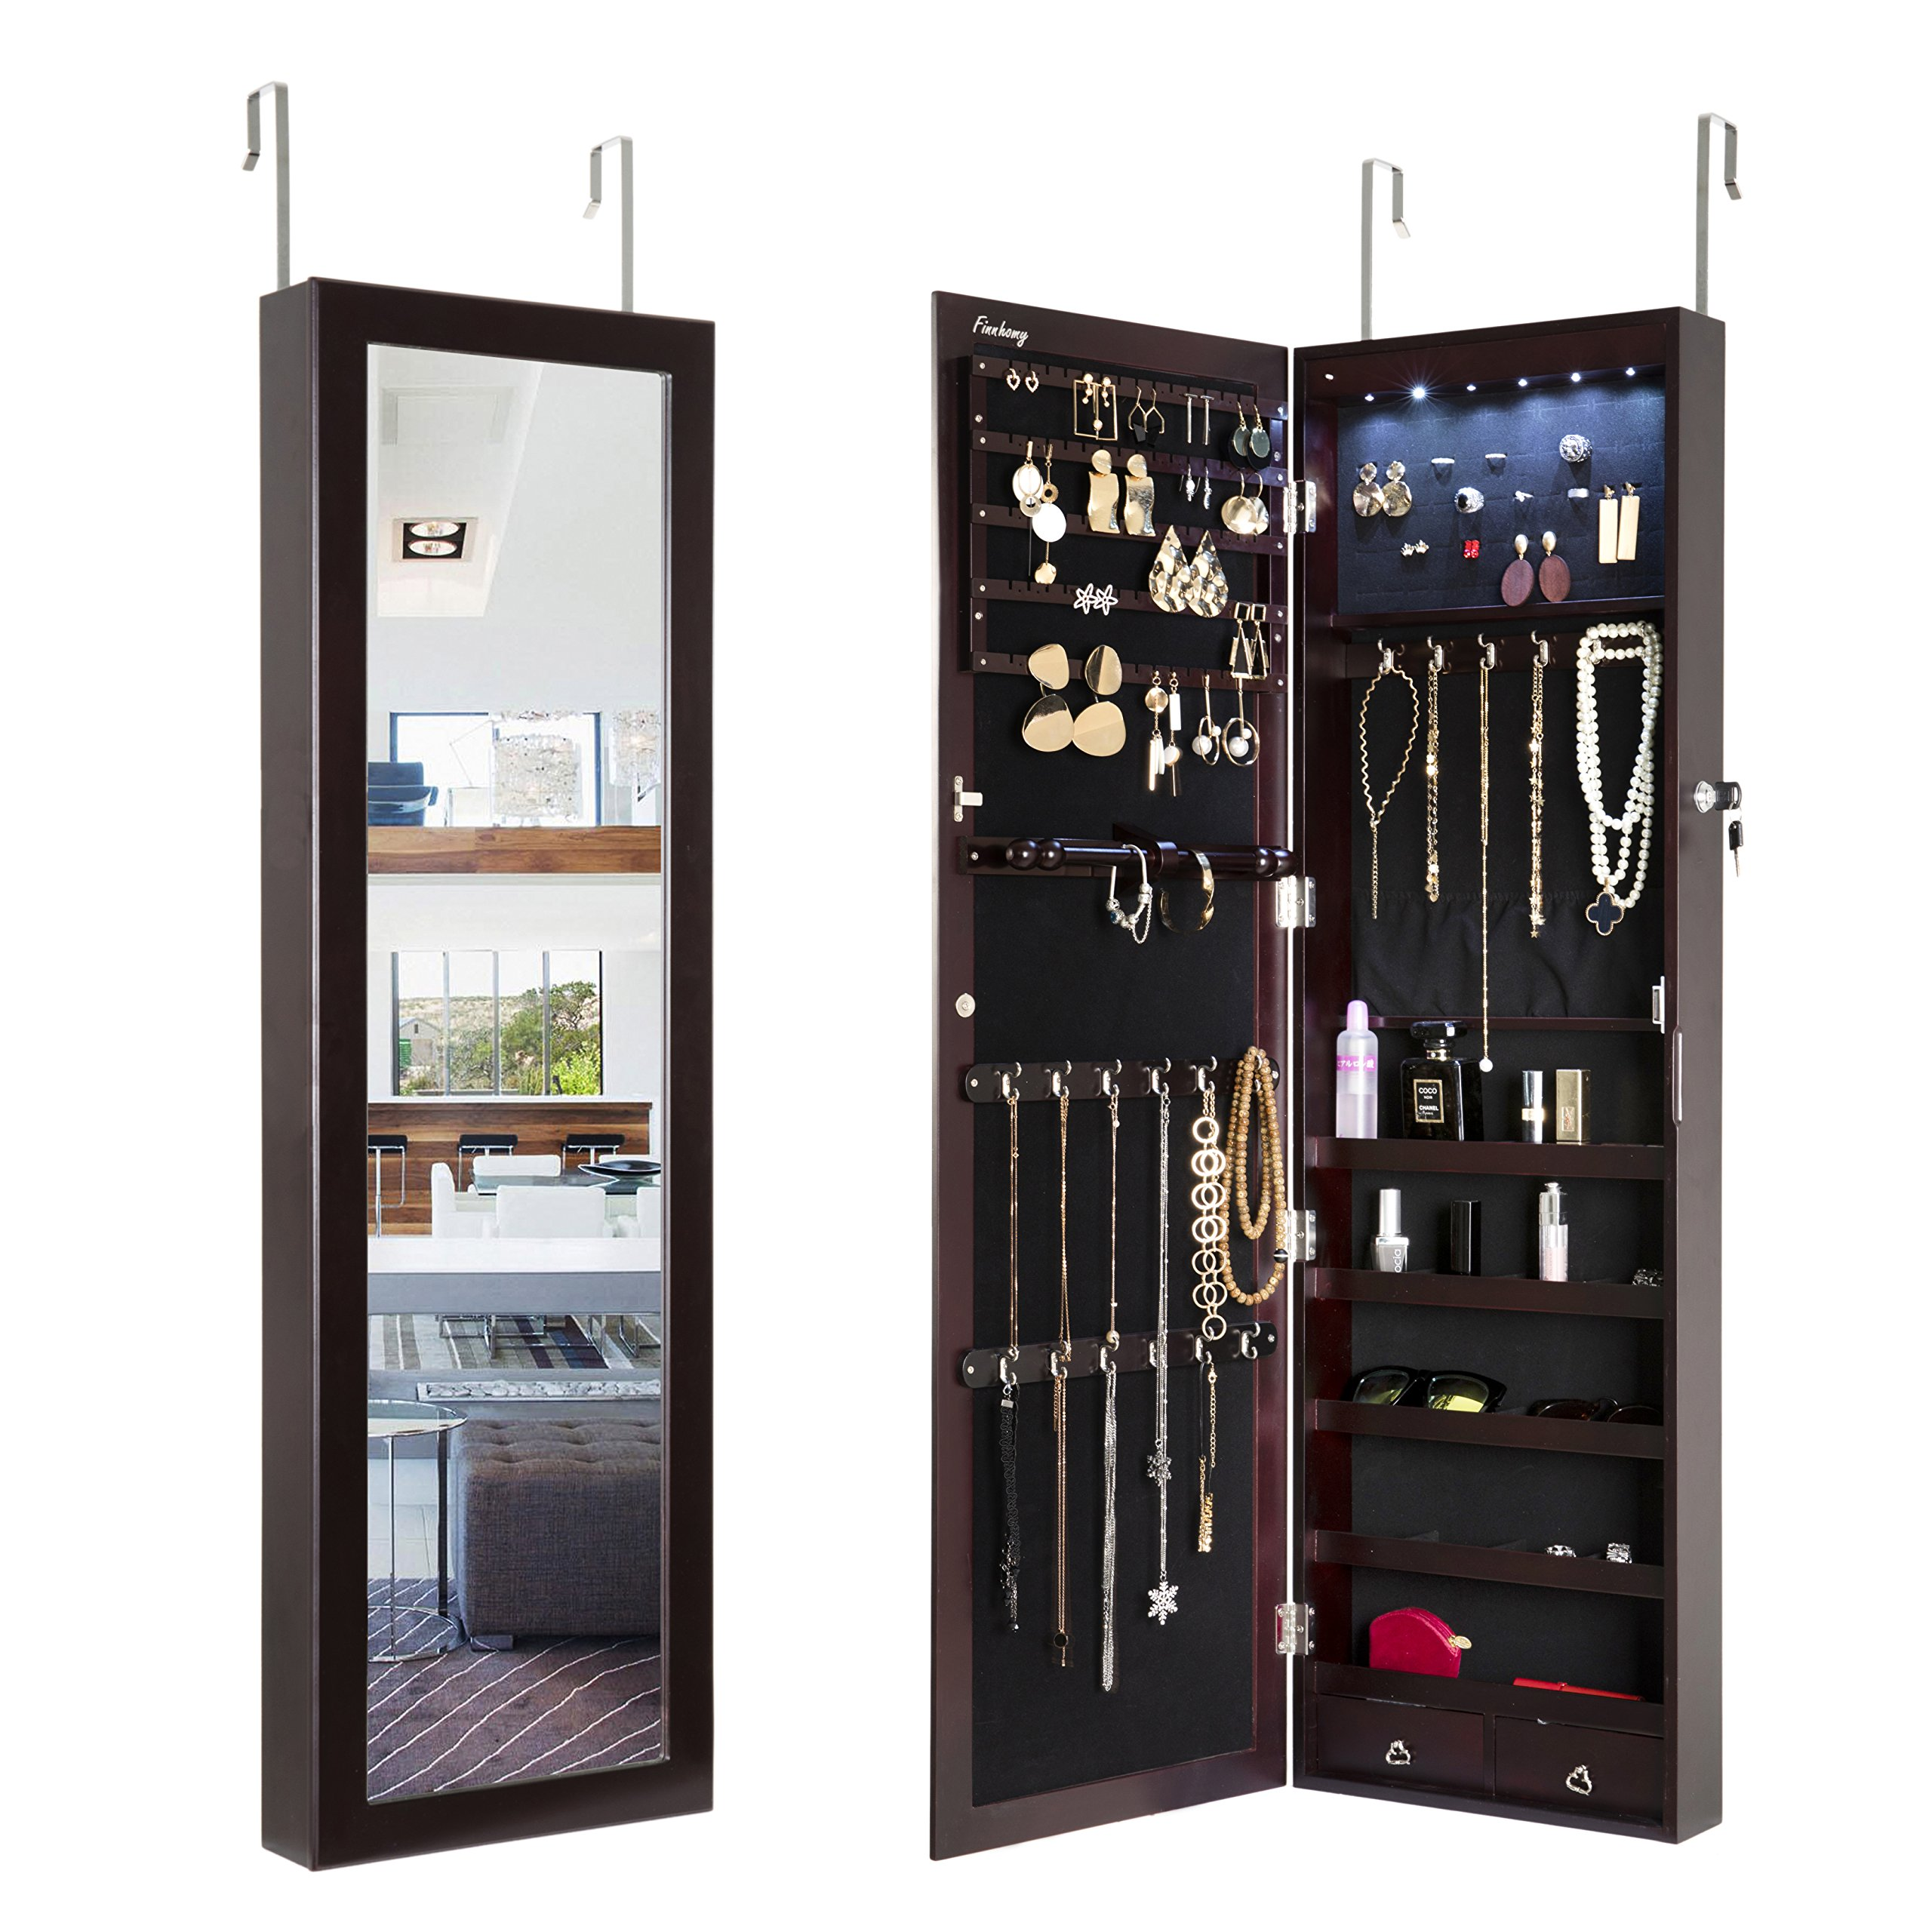 FINNHOMY Over The Door Mounted Lockable Mirrored Jewelry Armoire Storage Organizer Makeup Cabinet Holder with LED Light for Ring Necklace Earring Cosmetic Broach Bracelet Brown